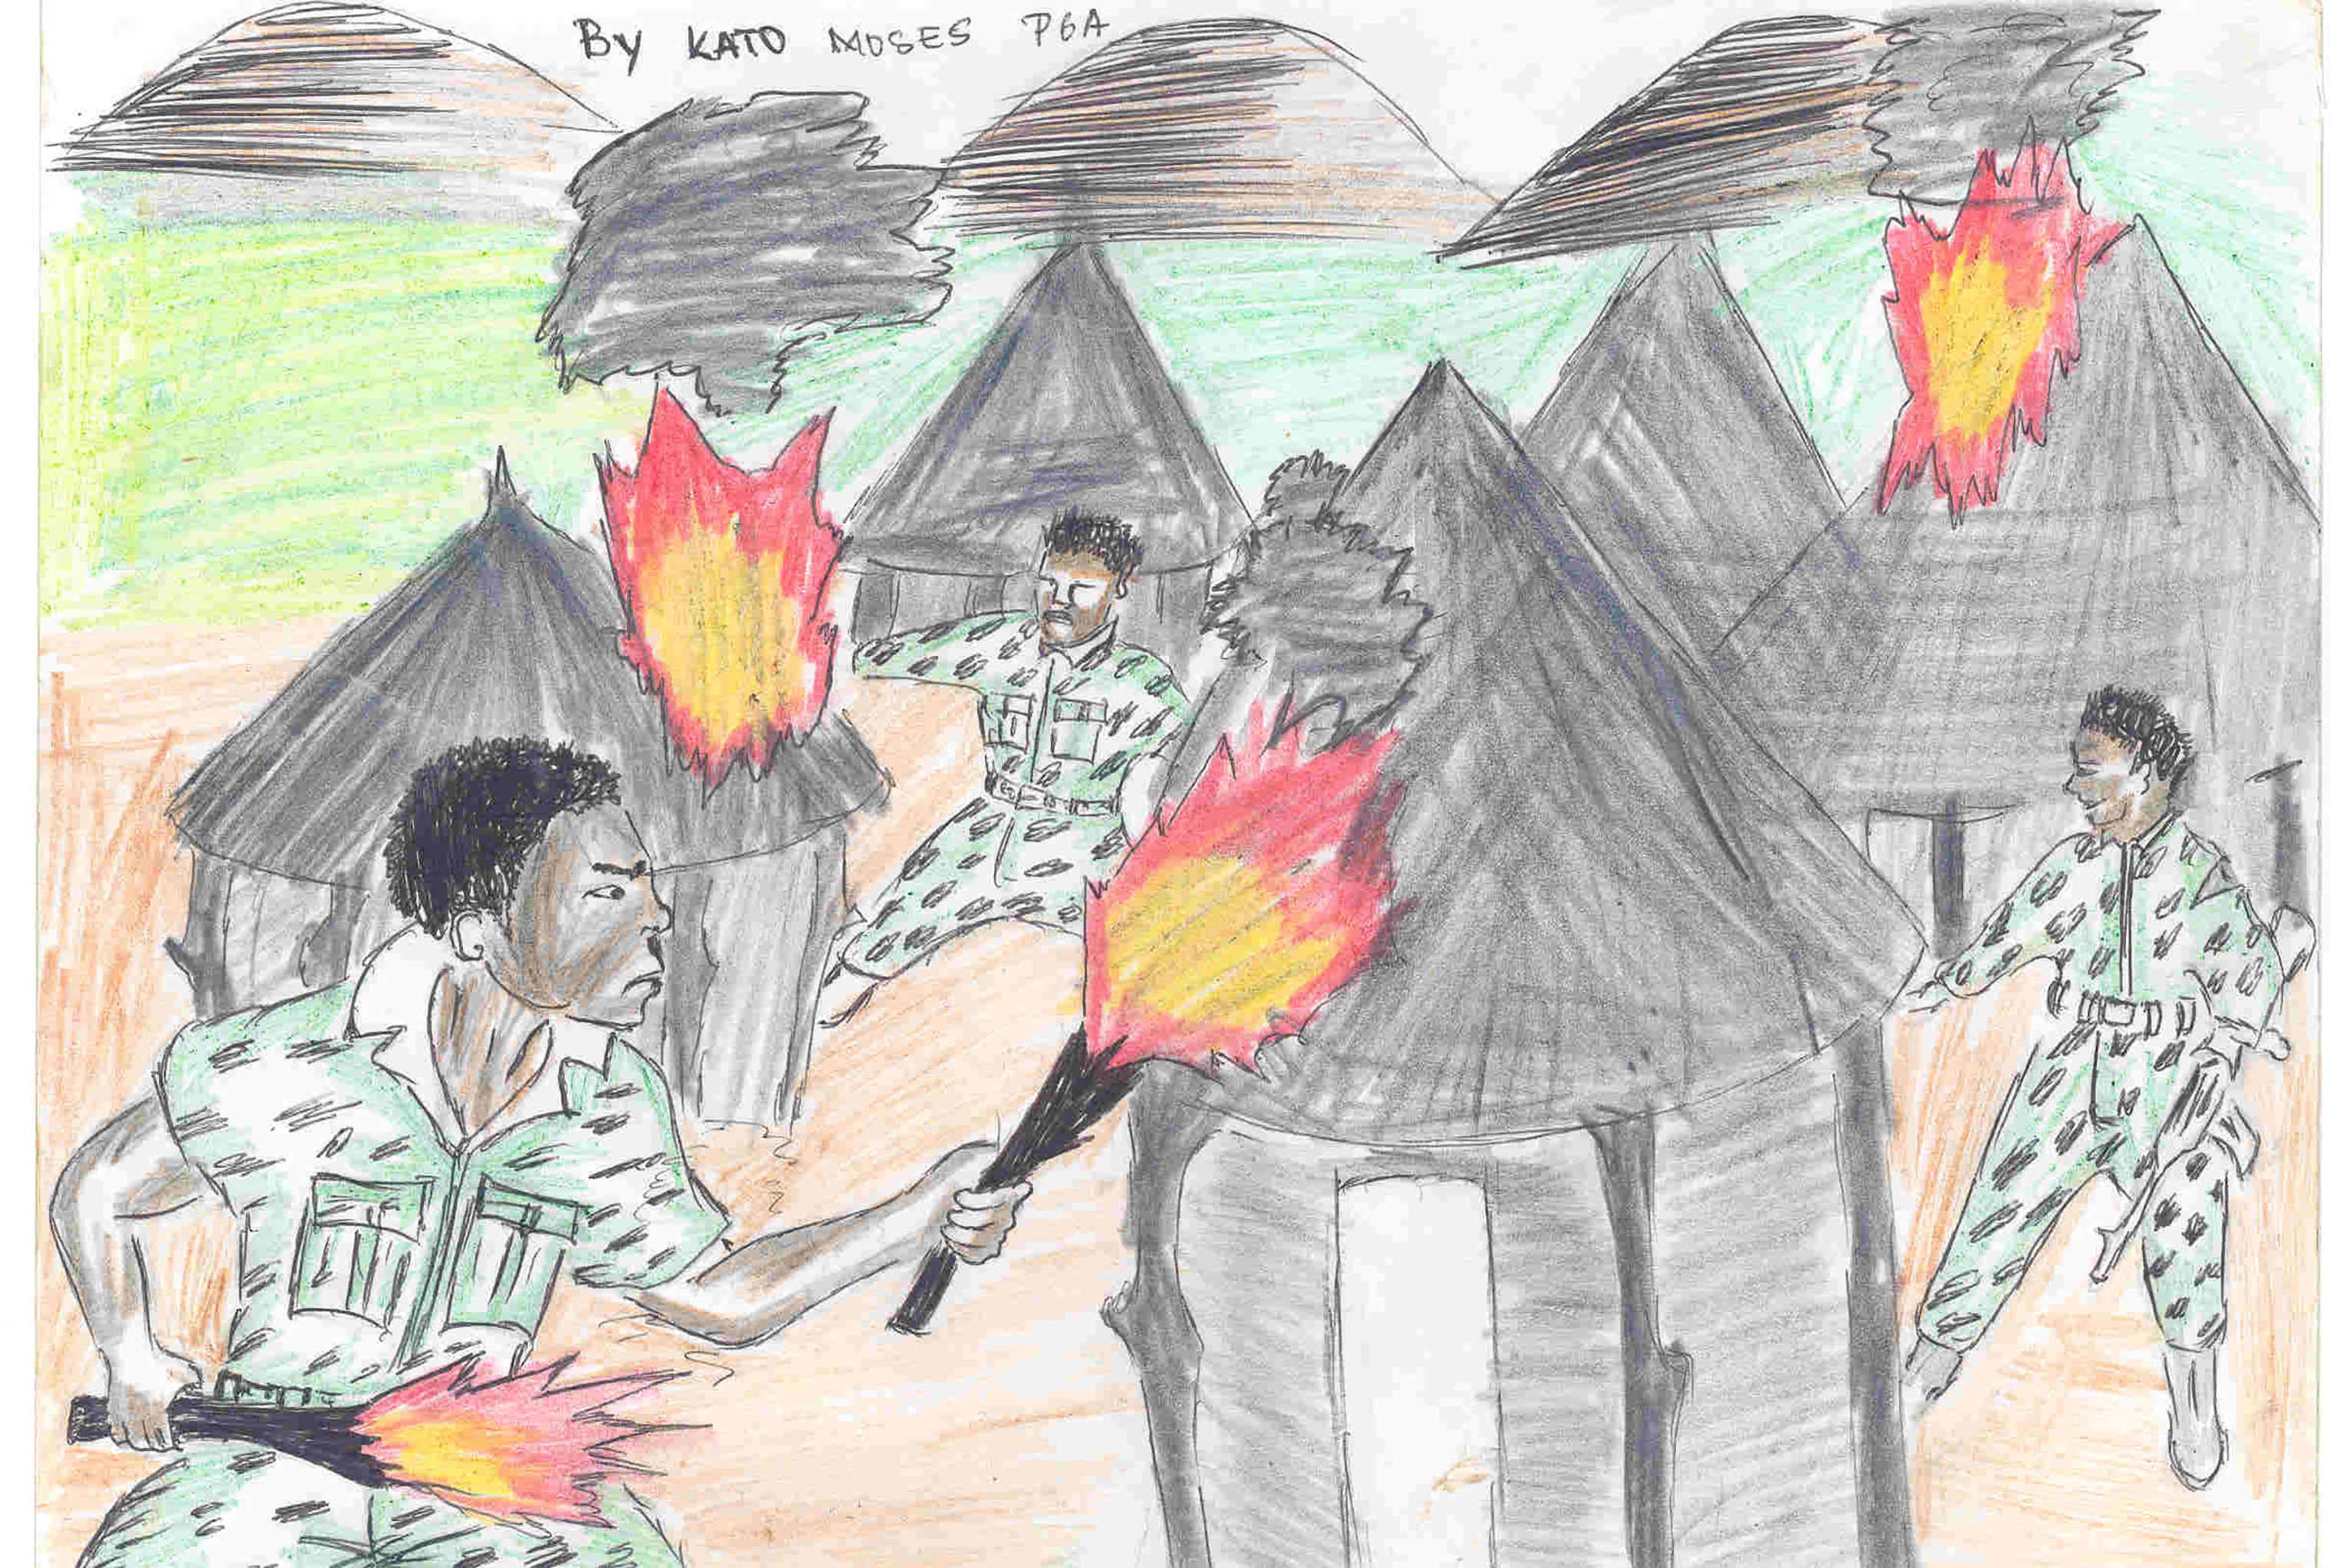 Drawings made by former child soldiers in Uganda.